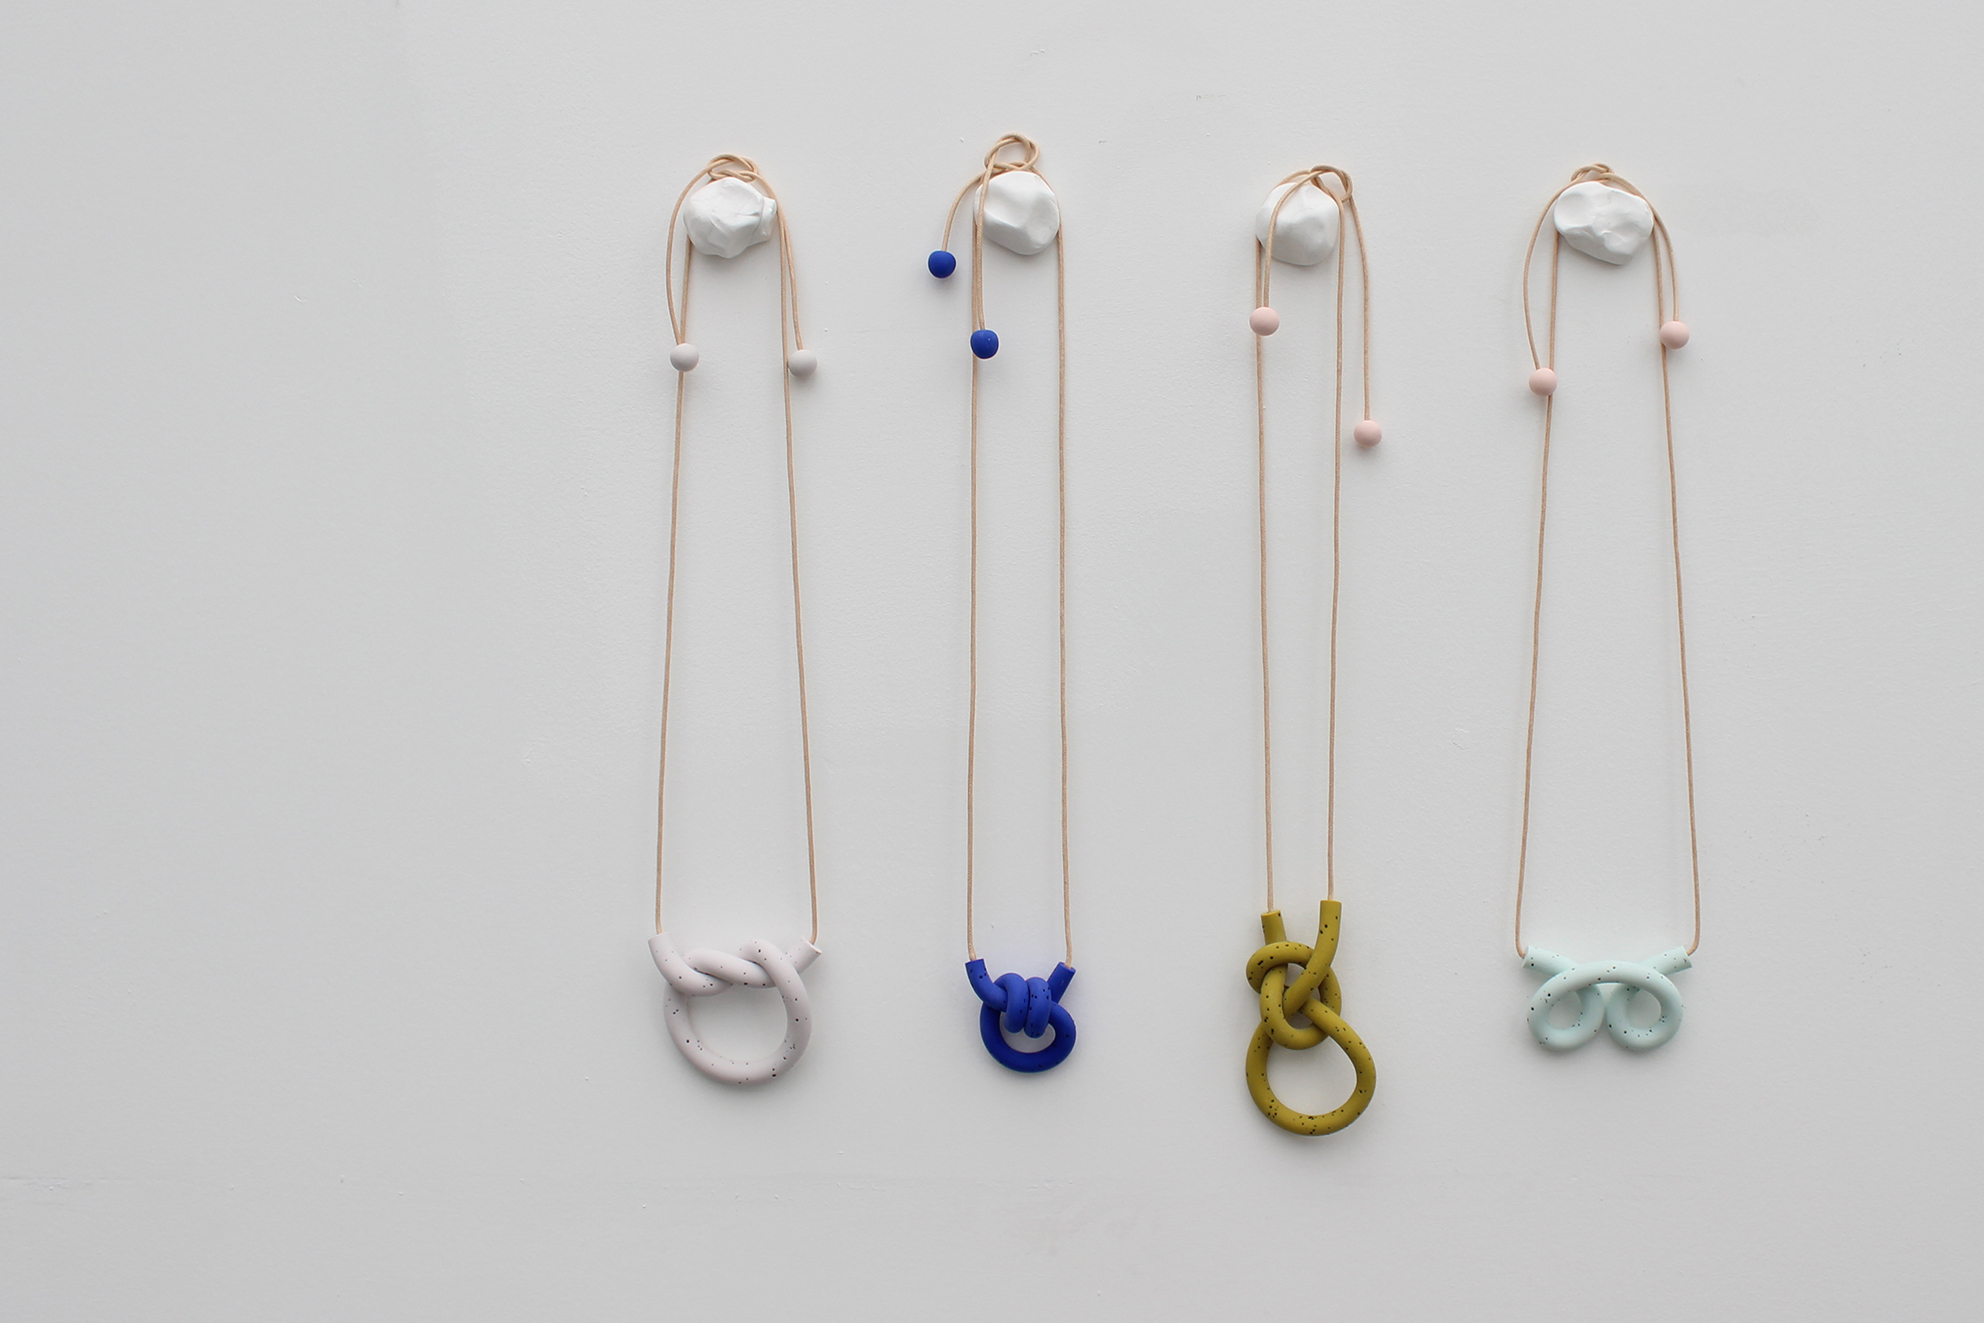 Knot necklaces